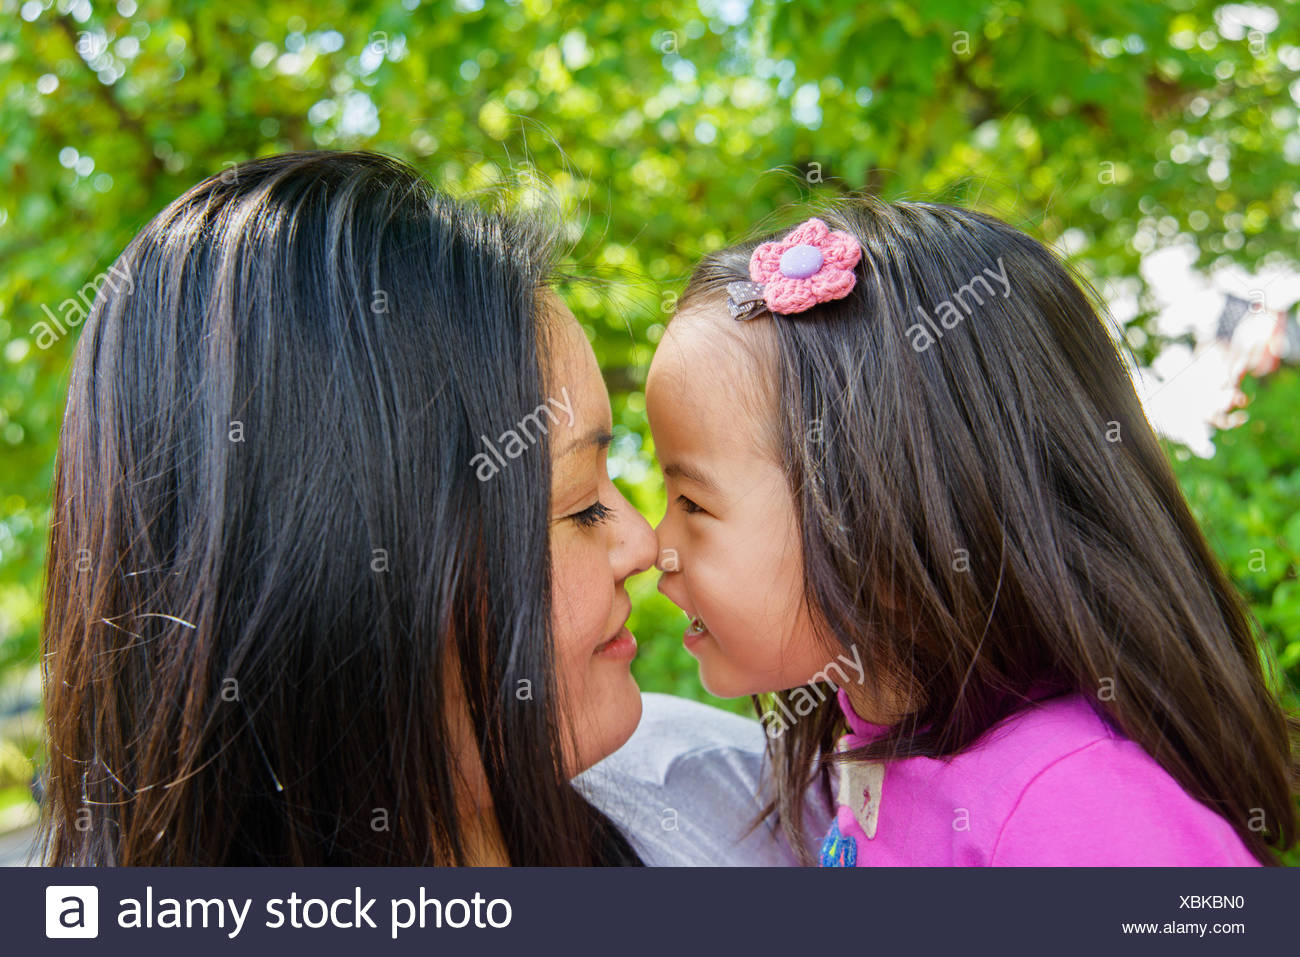 Portrait of mid adult mother and girl toddler nose to nose - Stock Image